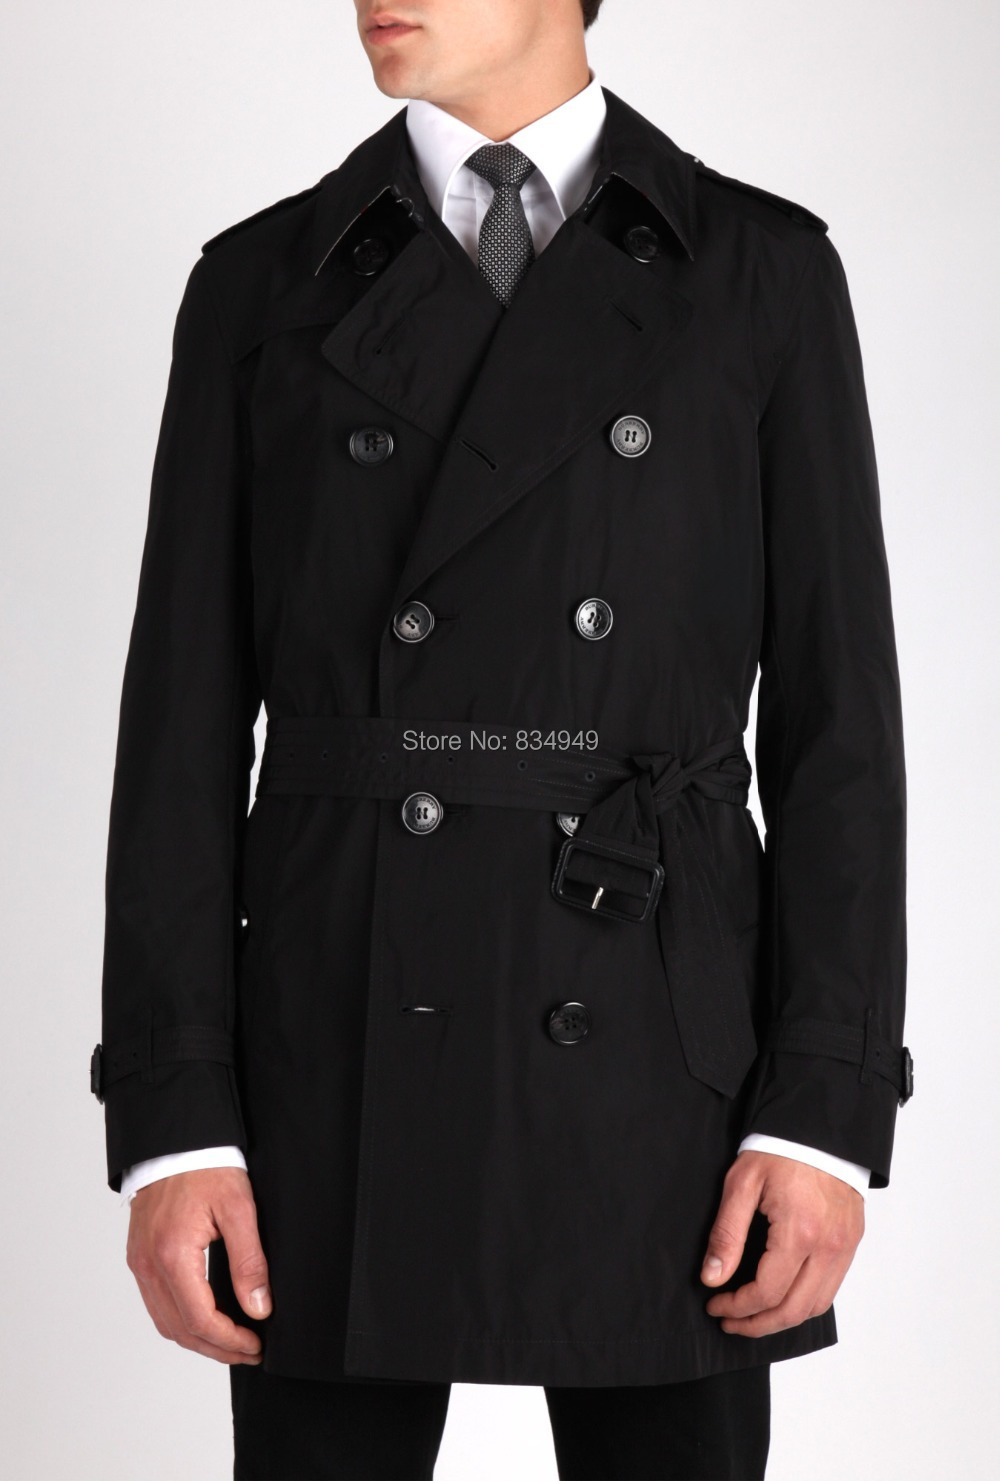 Compare Prices on Winter Coat Men Formal- Online Shopping/Buy Low ...